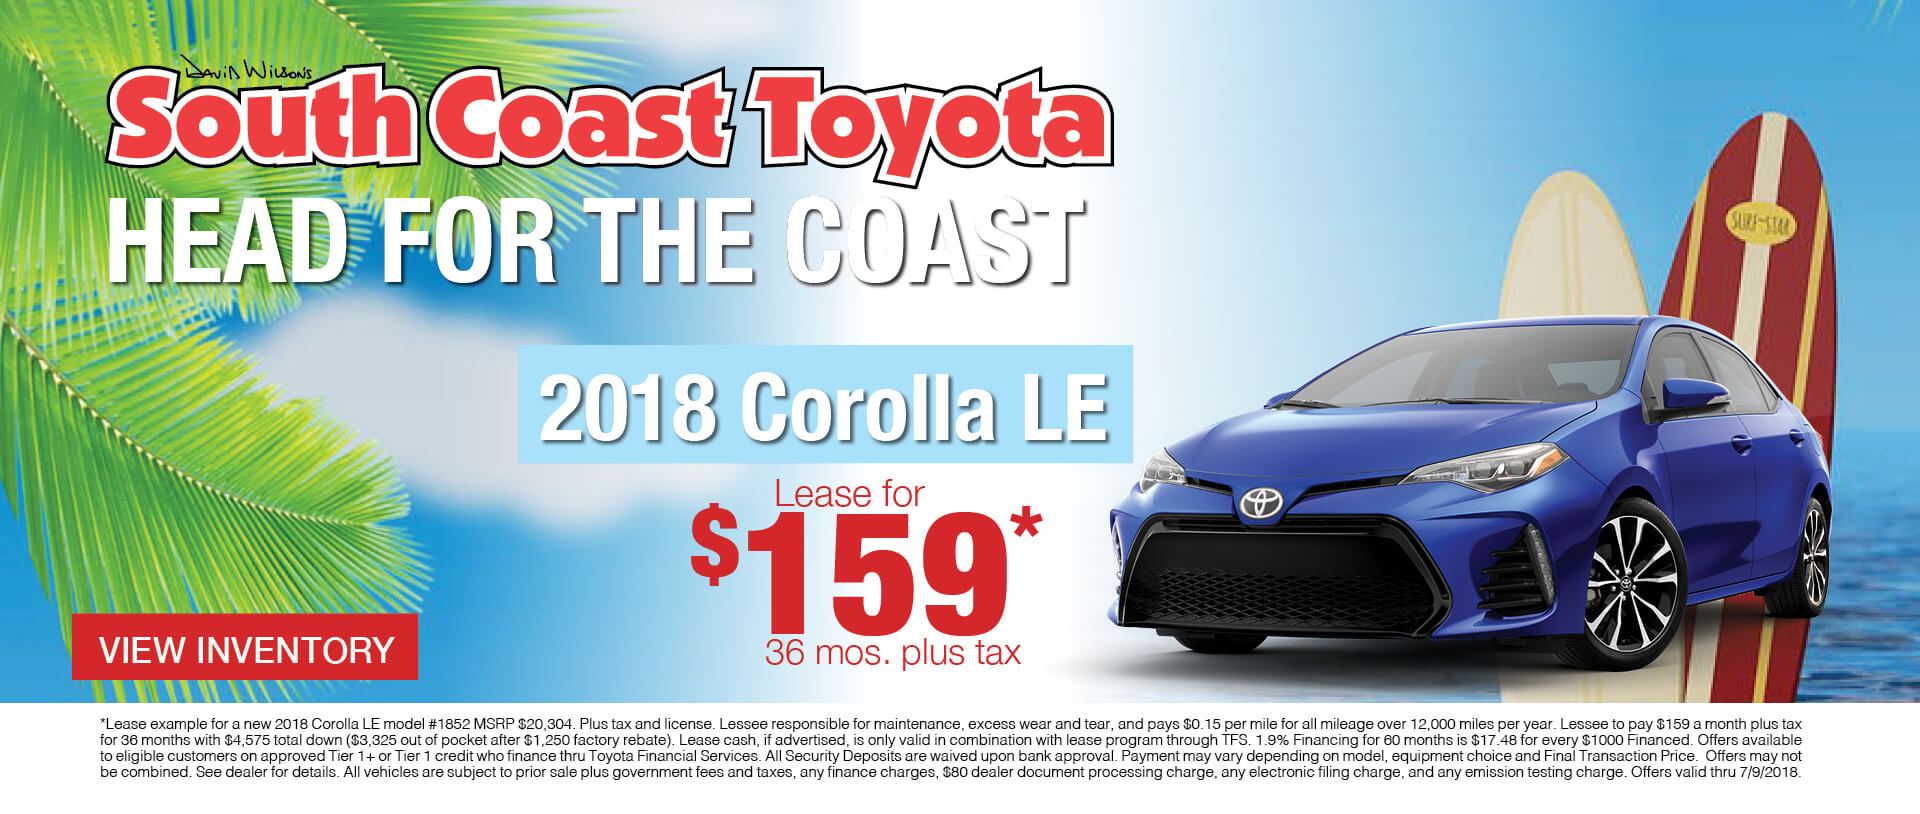 Memorial Day Toyota Corolla $159 Lease